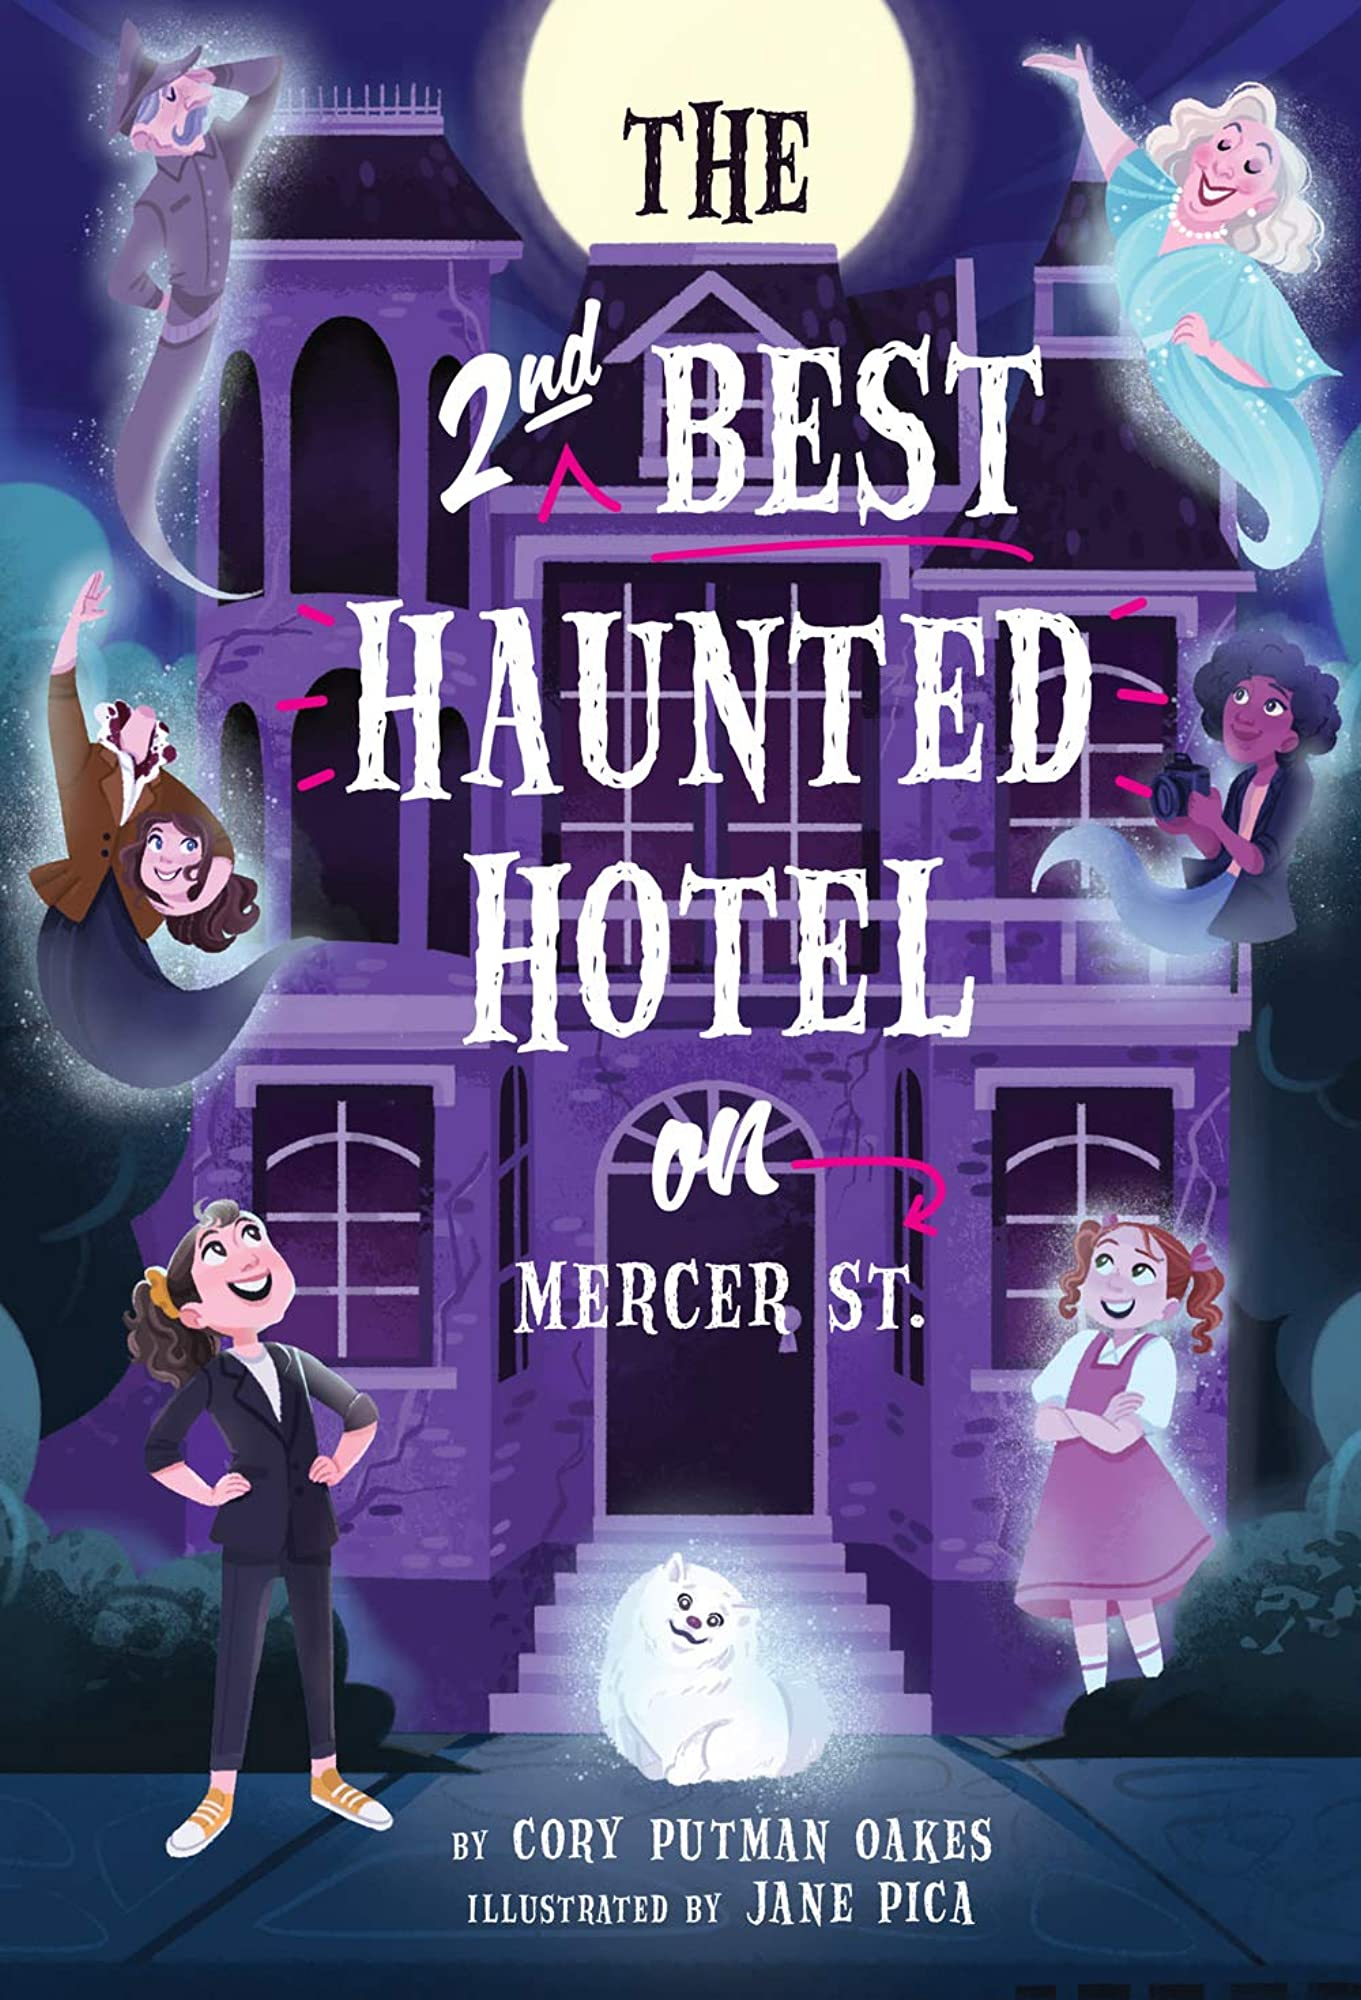 The Second Best Haunted Hotel on Mercer Street by Cory Putman Oakes